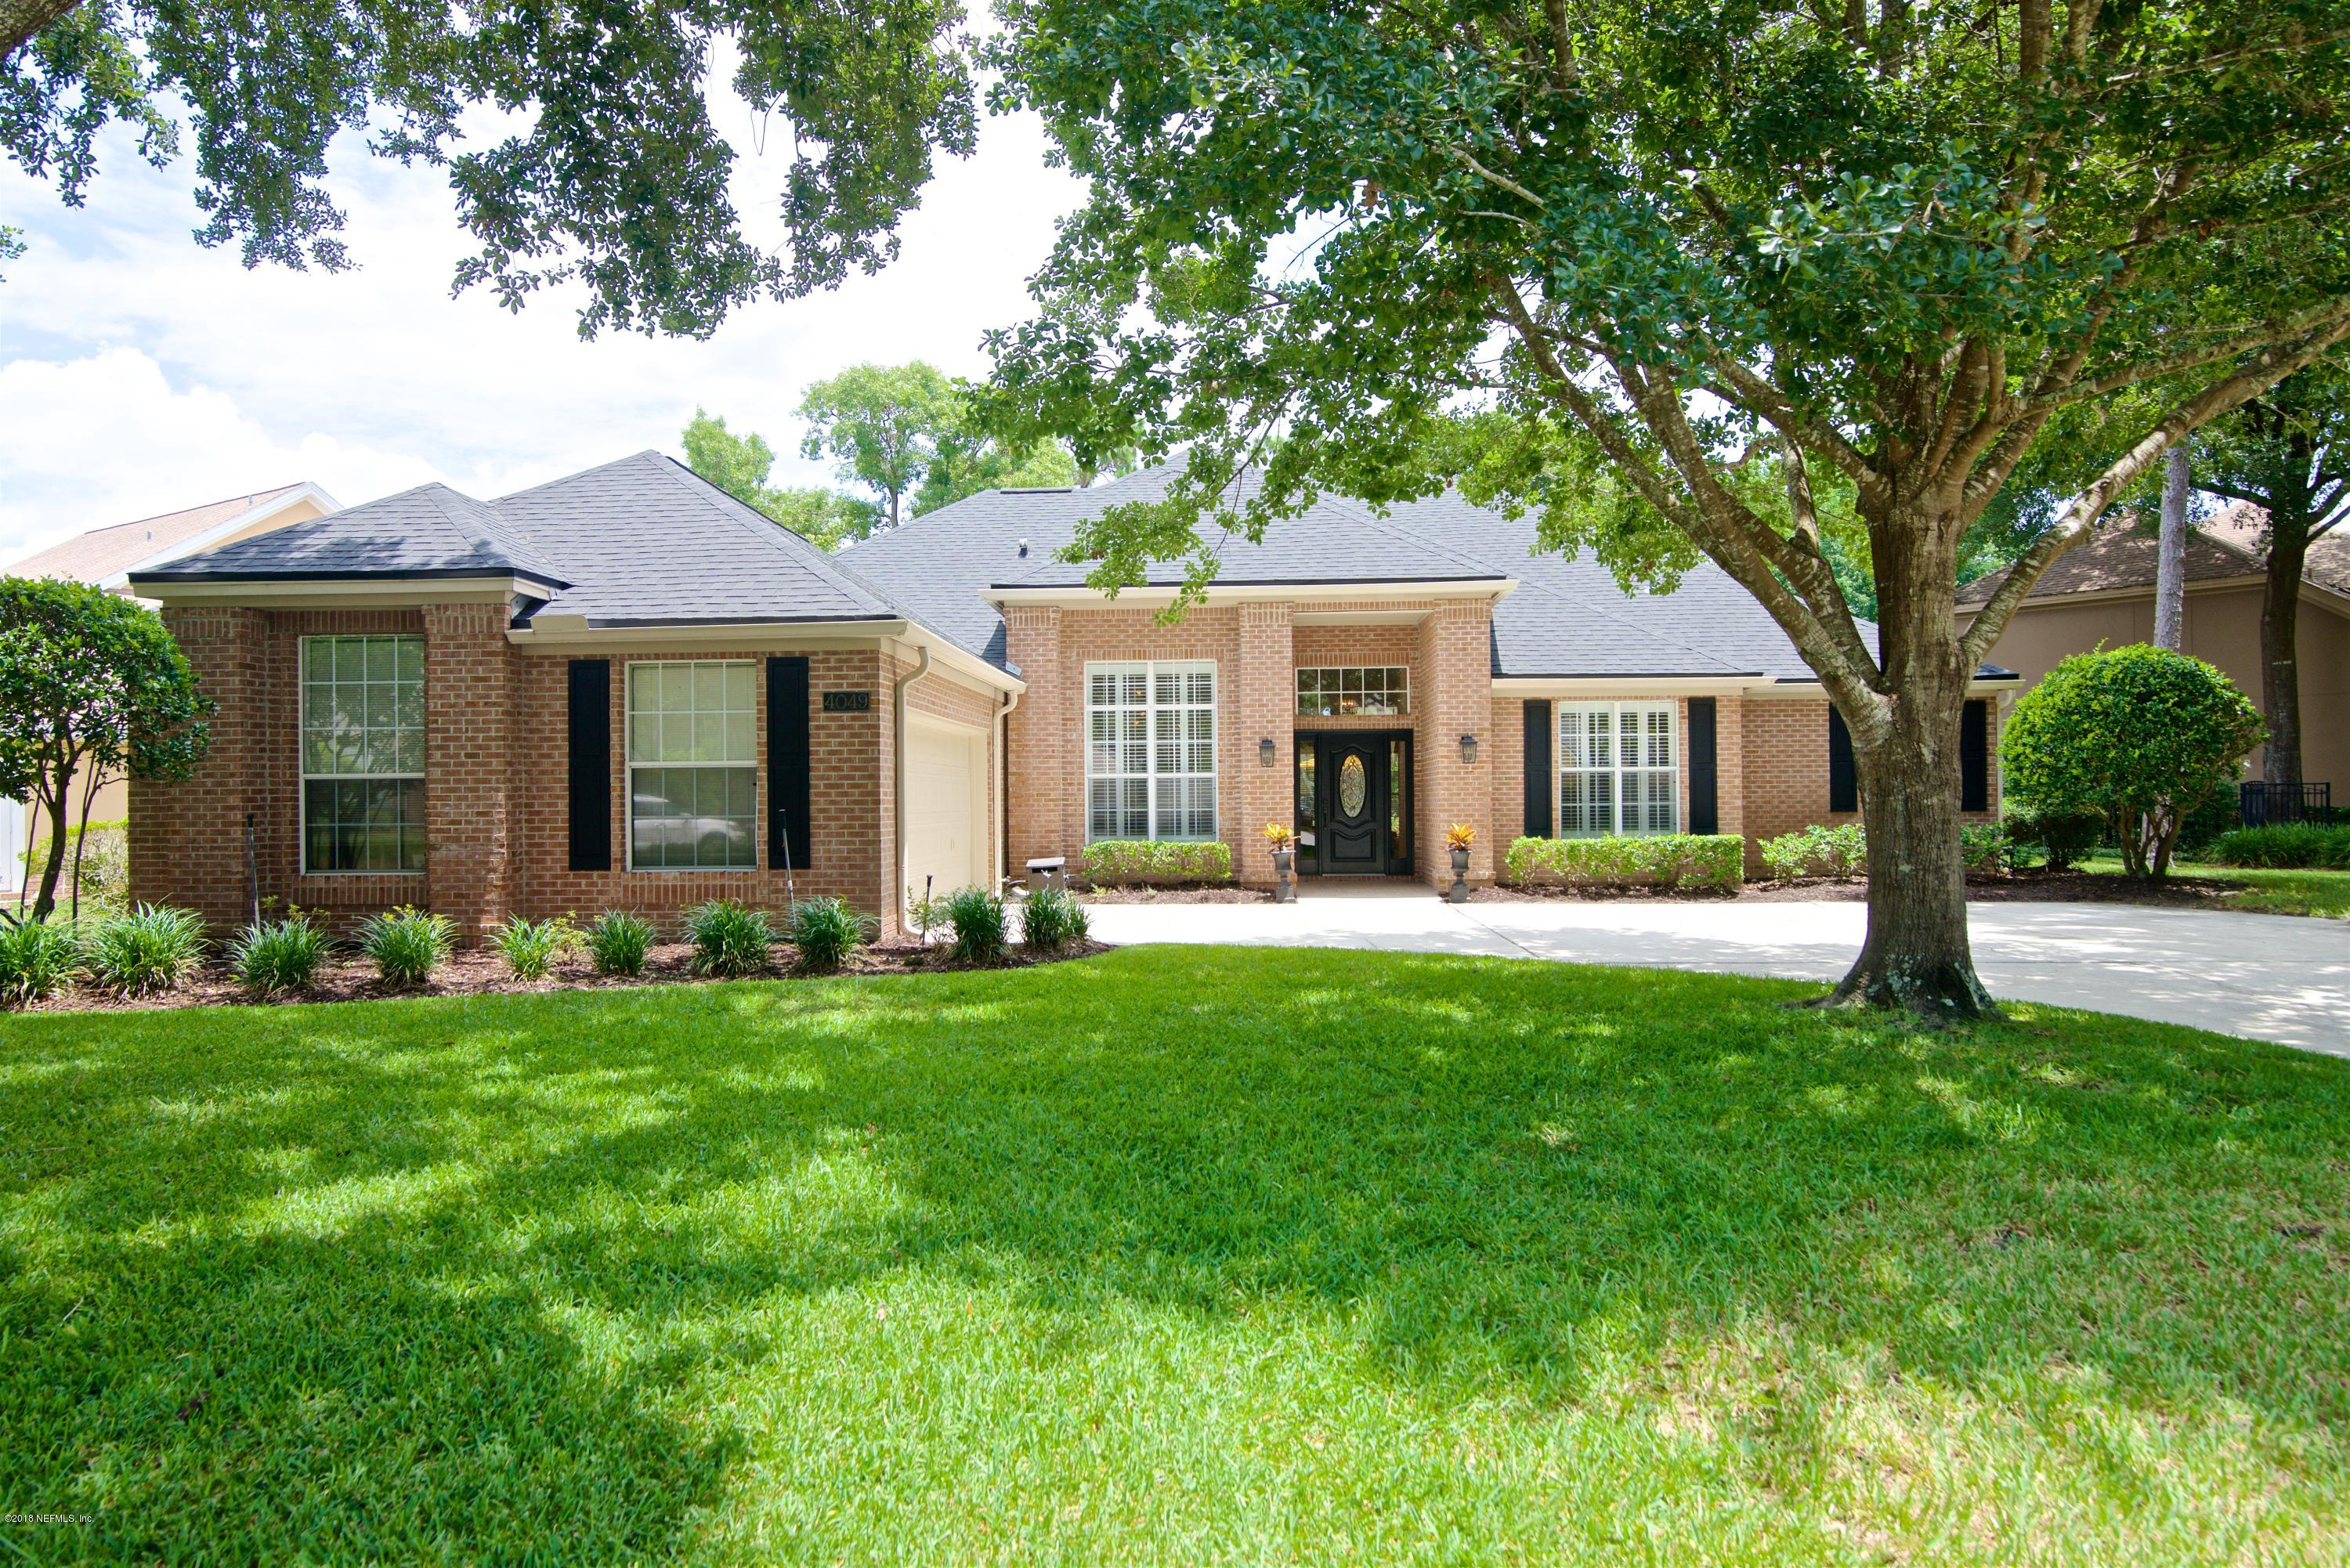 4049 JEBB ISLAND, JACKSONVILLE, FLORIDA 32224, 4 Bedrooms Bedrooms, ,3 BathroomsBathrooms,Residential - single family,For sale,JEBB ISLAND,944336